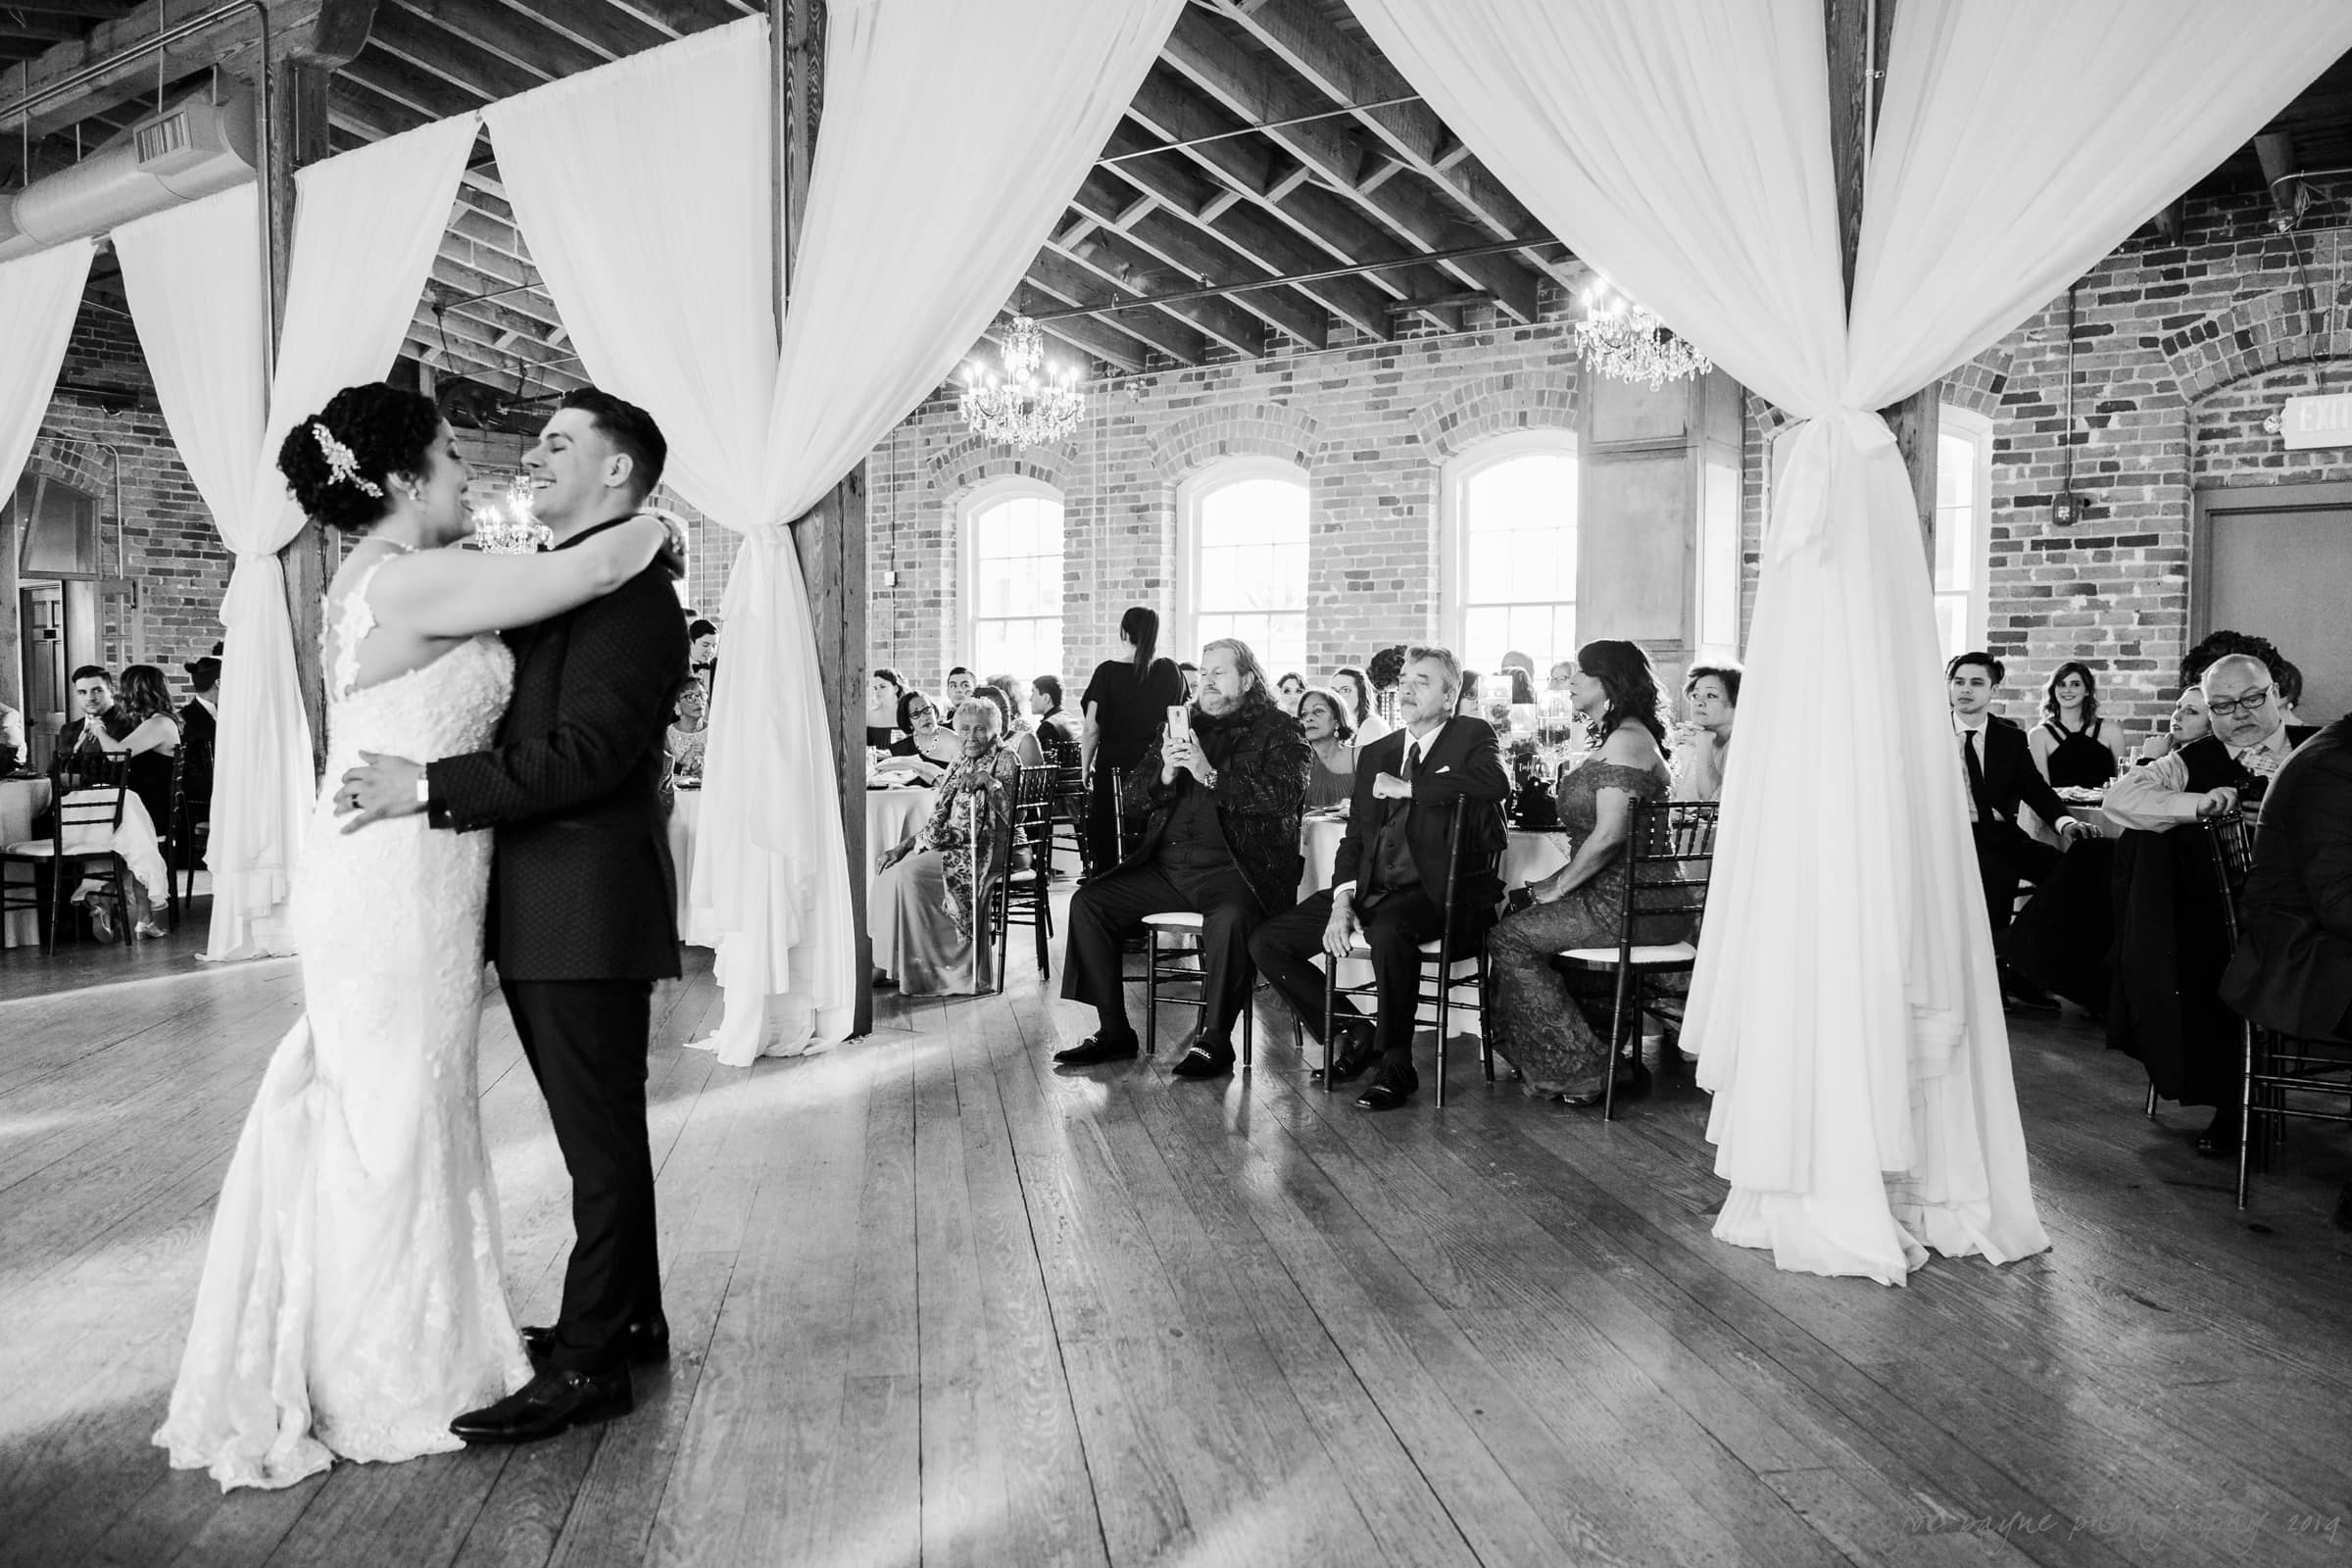 melrose knitting mill raleigh wedding photographer melanie anthony 48